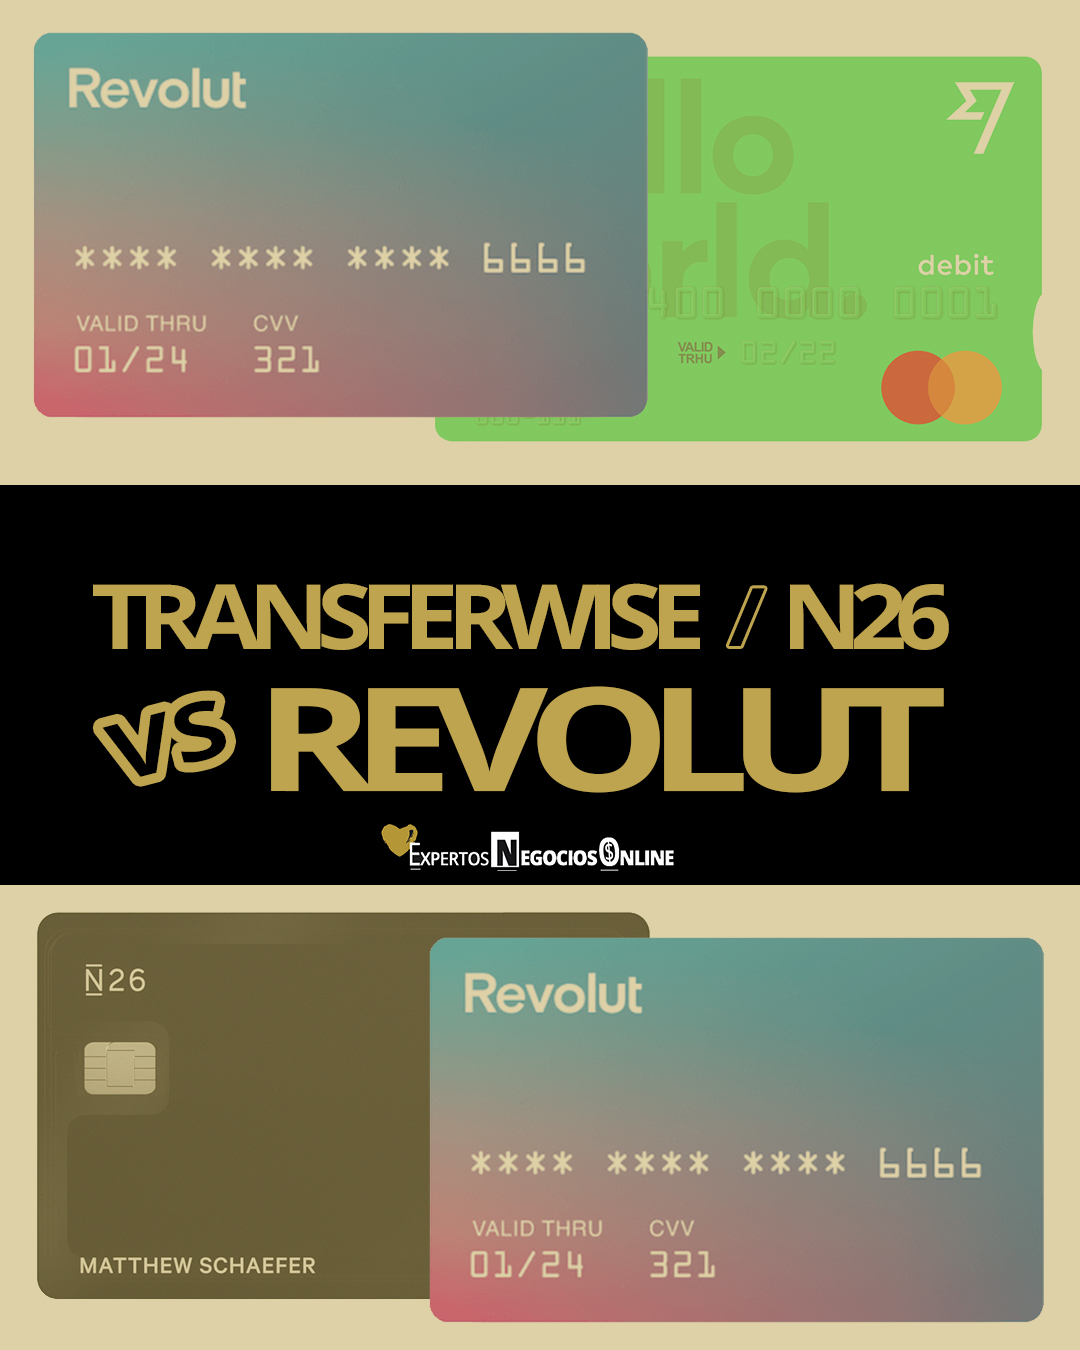 Transferwise empresas VS Revolut Business VS N26